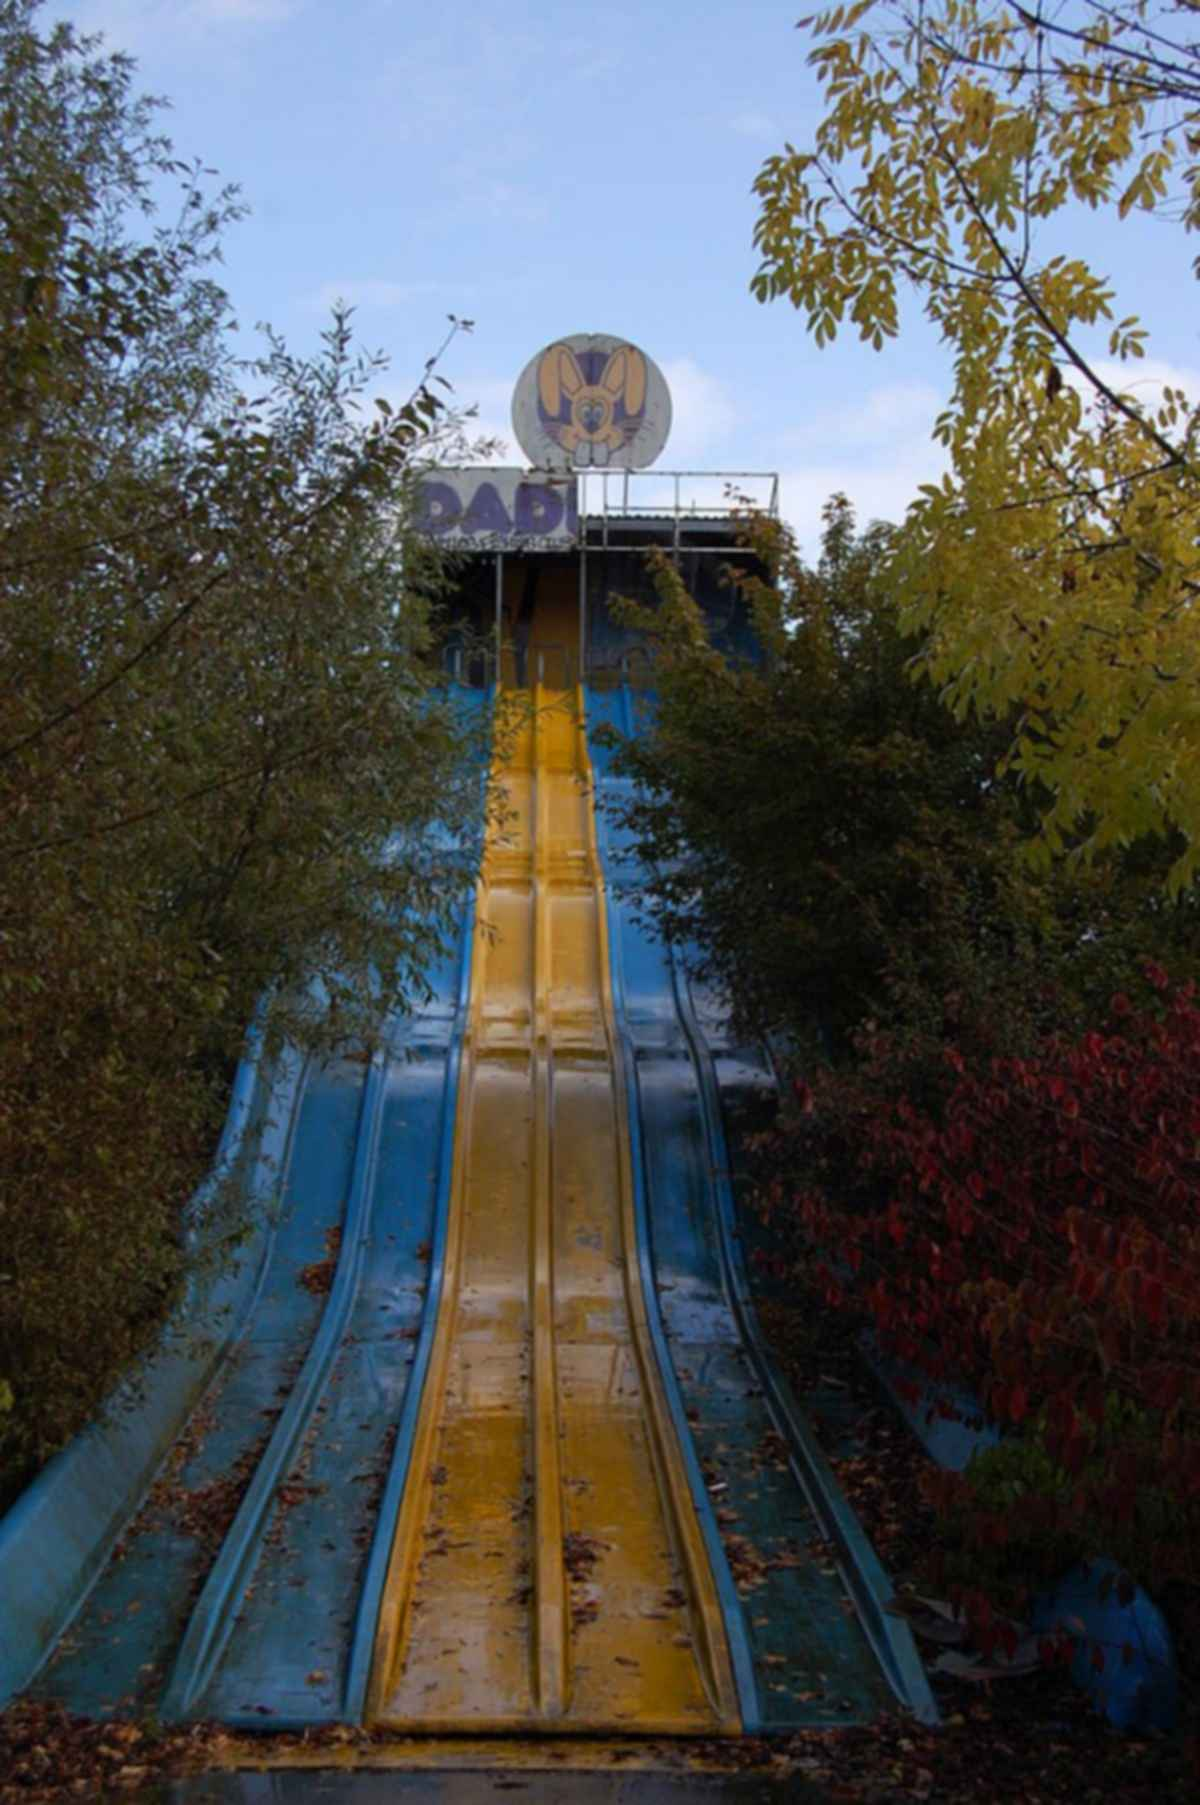 Dadipark Amusement Park - Slide